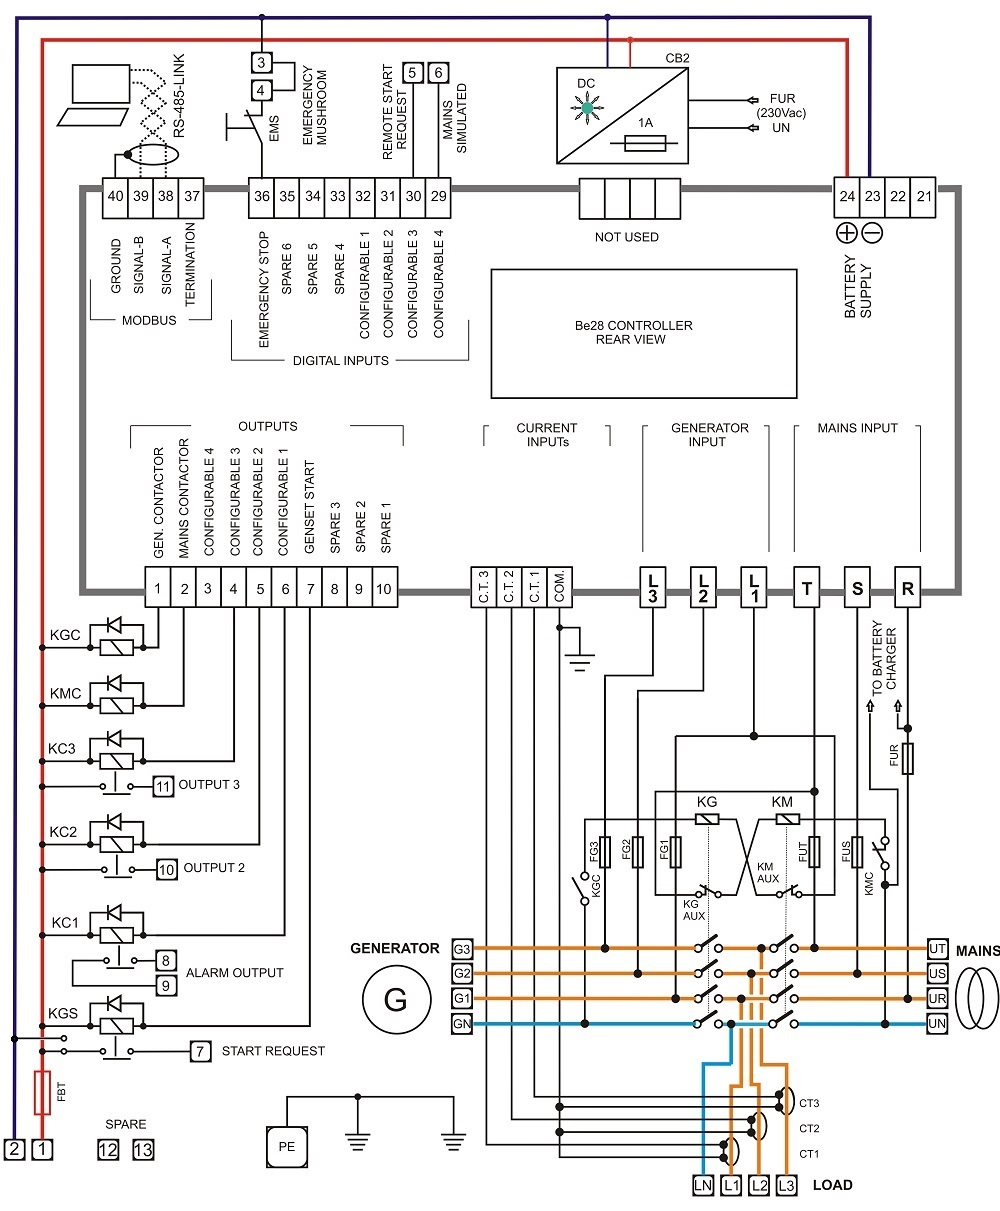 citroen c5 x7 wiring diagram citroen c5 wiring diagram car trailer lights wiring diagram industrial wiring [ 1000 x 1211 Pixel ]